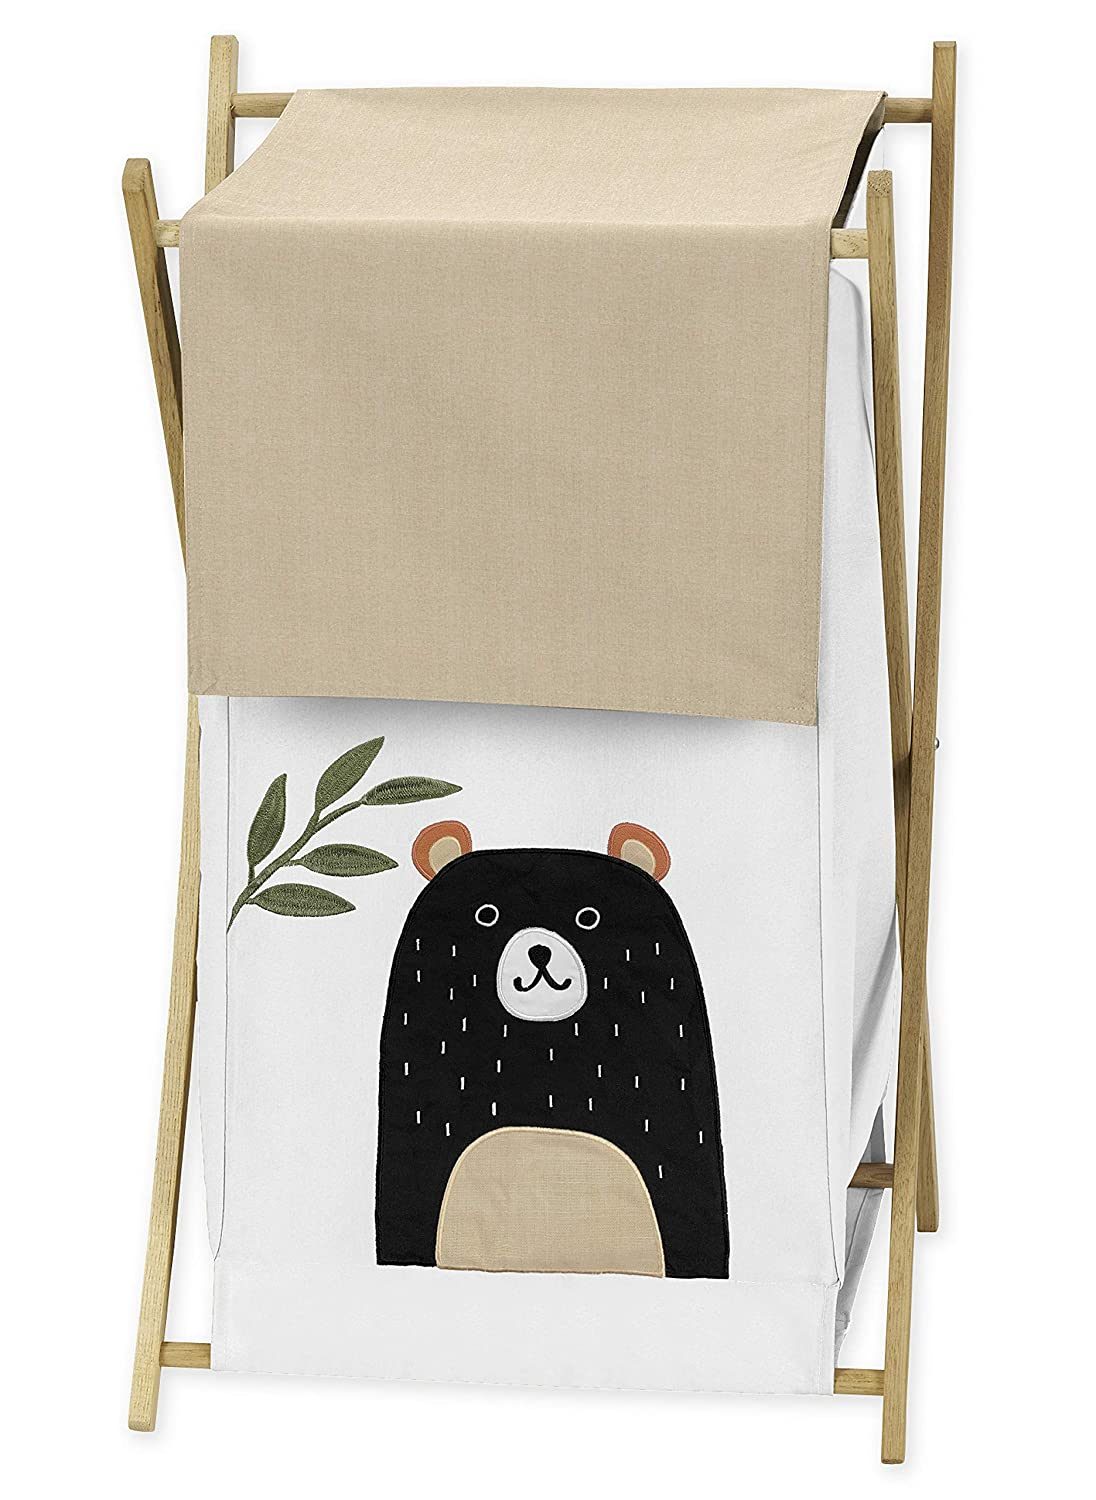 Sweet Jojo Designs Bear Forest Animal Baby Kid Clothes Laundry Hamper for Woodland Pals Collection - Neutral Beige, Green, Black and White